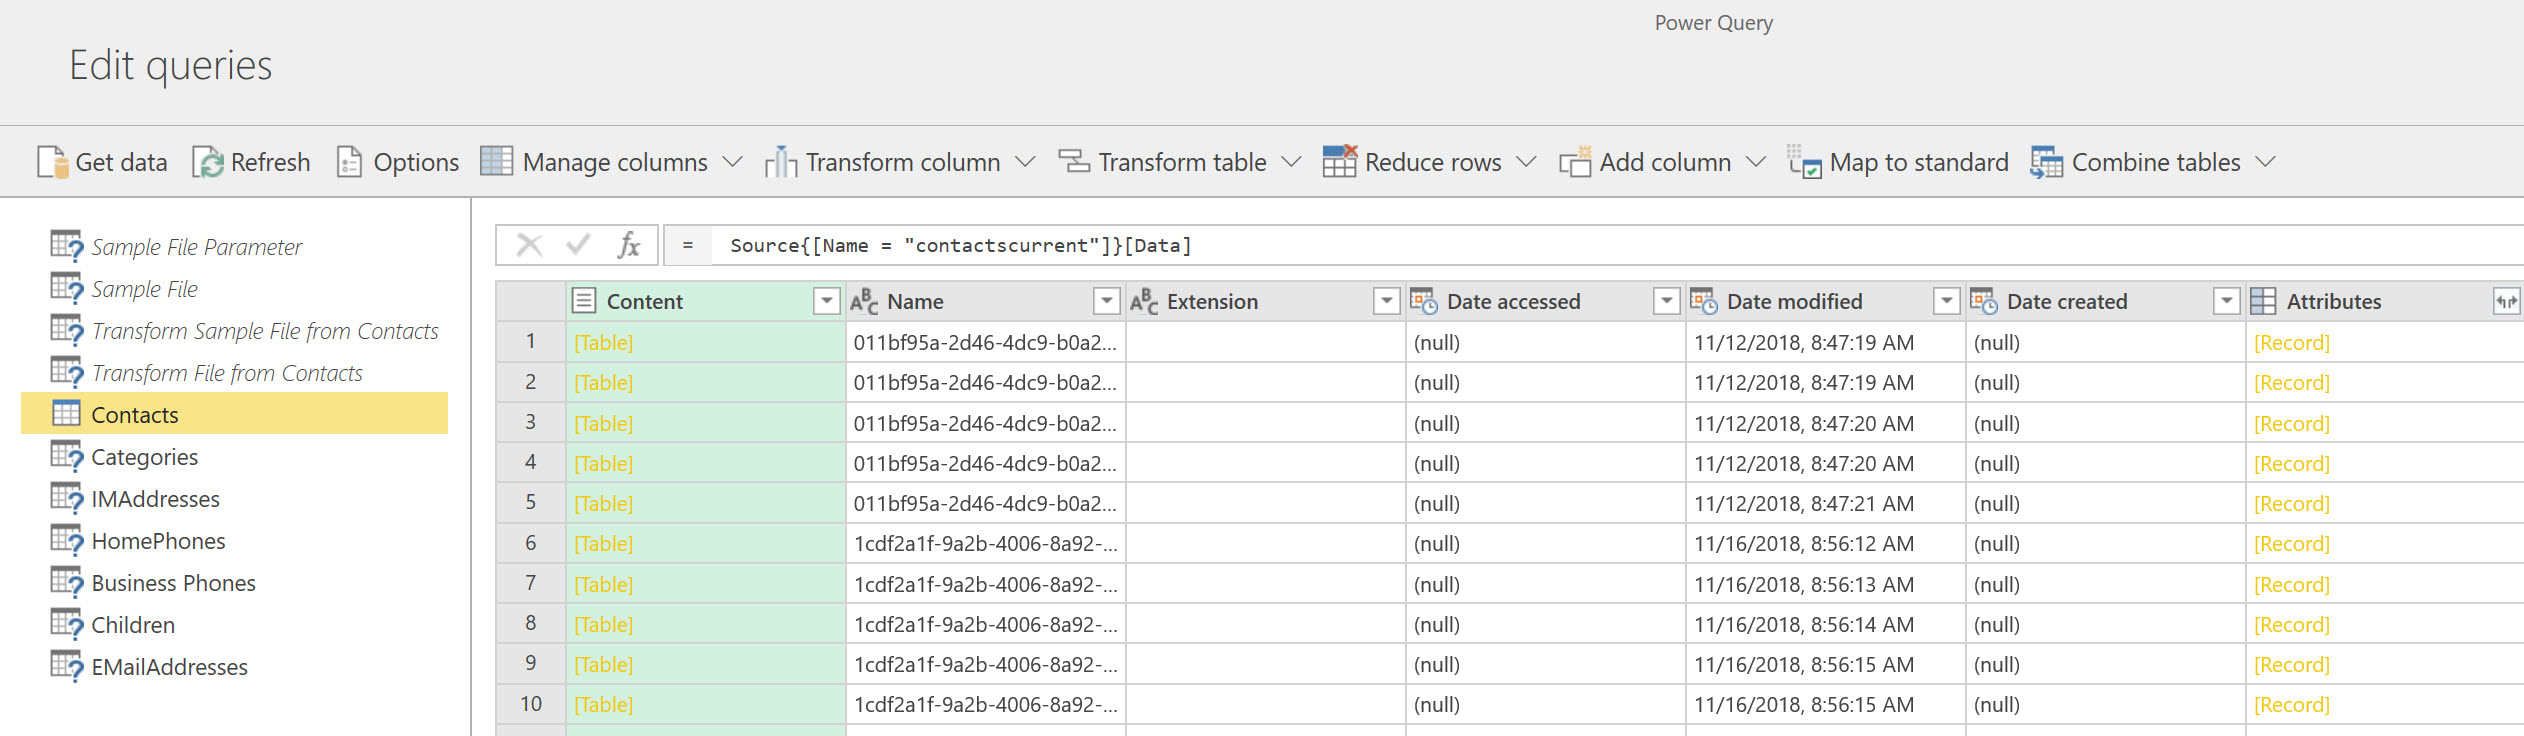 Power Query editor in dataflows